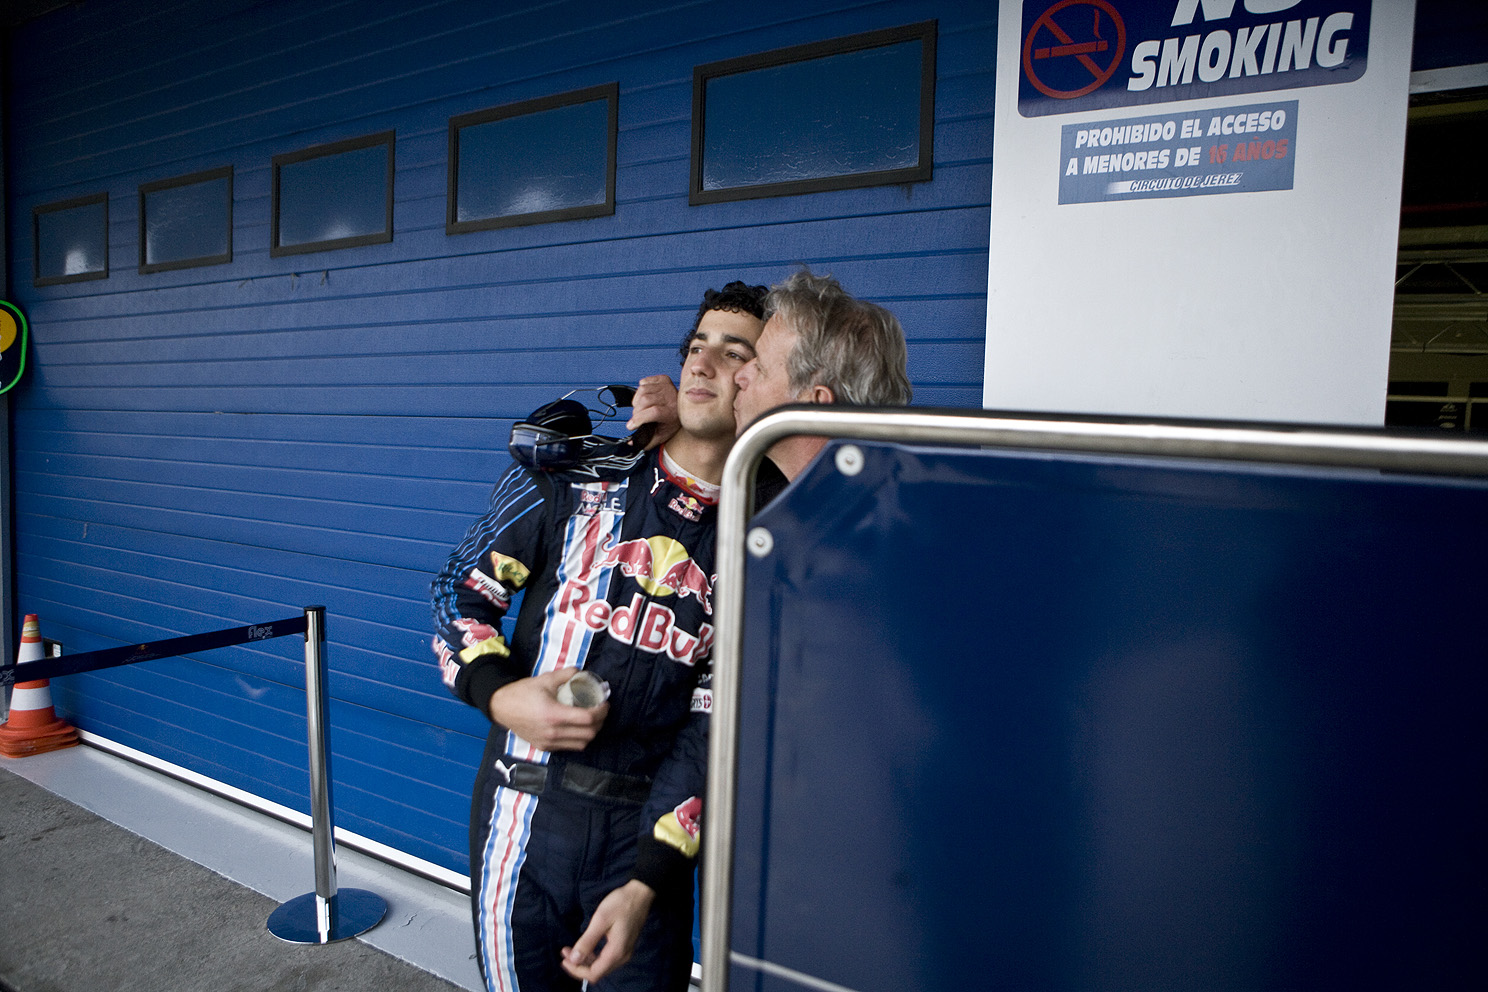 From - THE F1 YEARS - F1 driver Daniel Ricciardo gets a kiss off his dad Joe